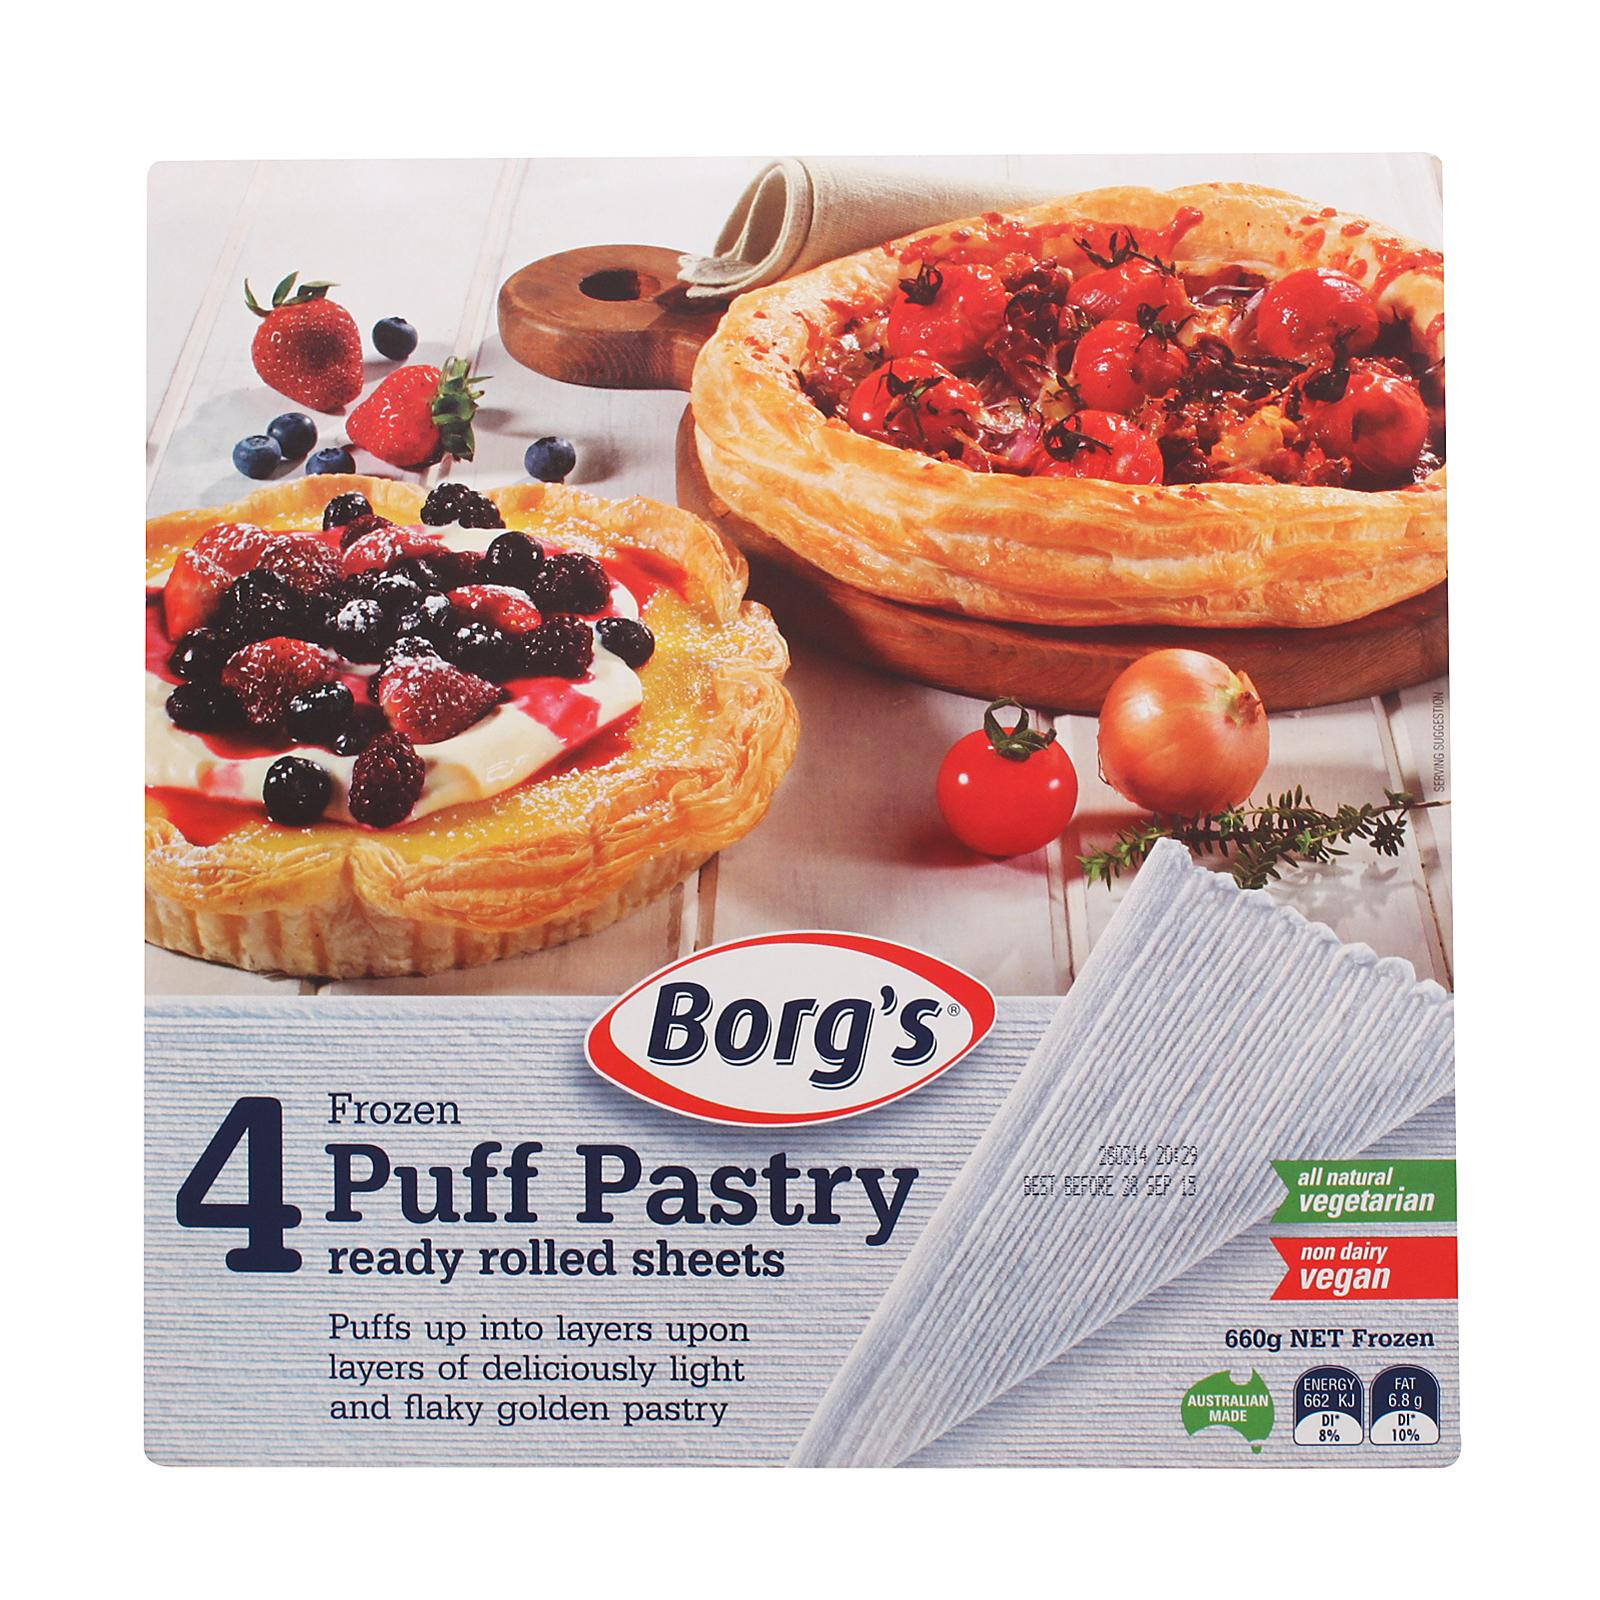 Borgs Puff Pastry 4pcs - Frozen By Redmart